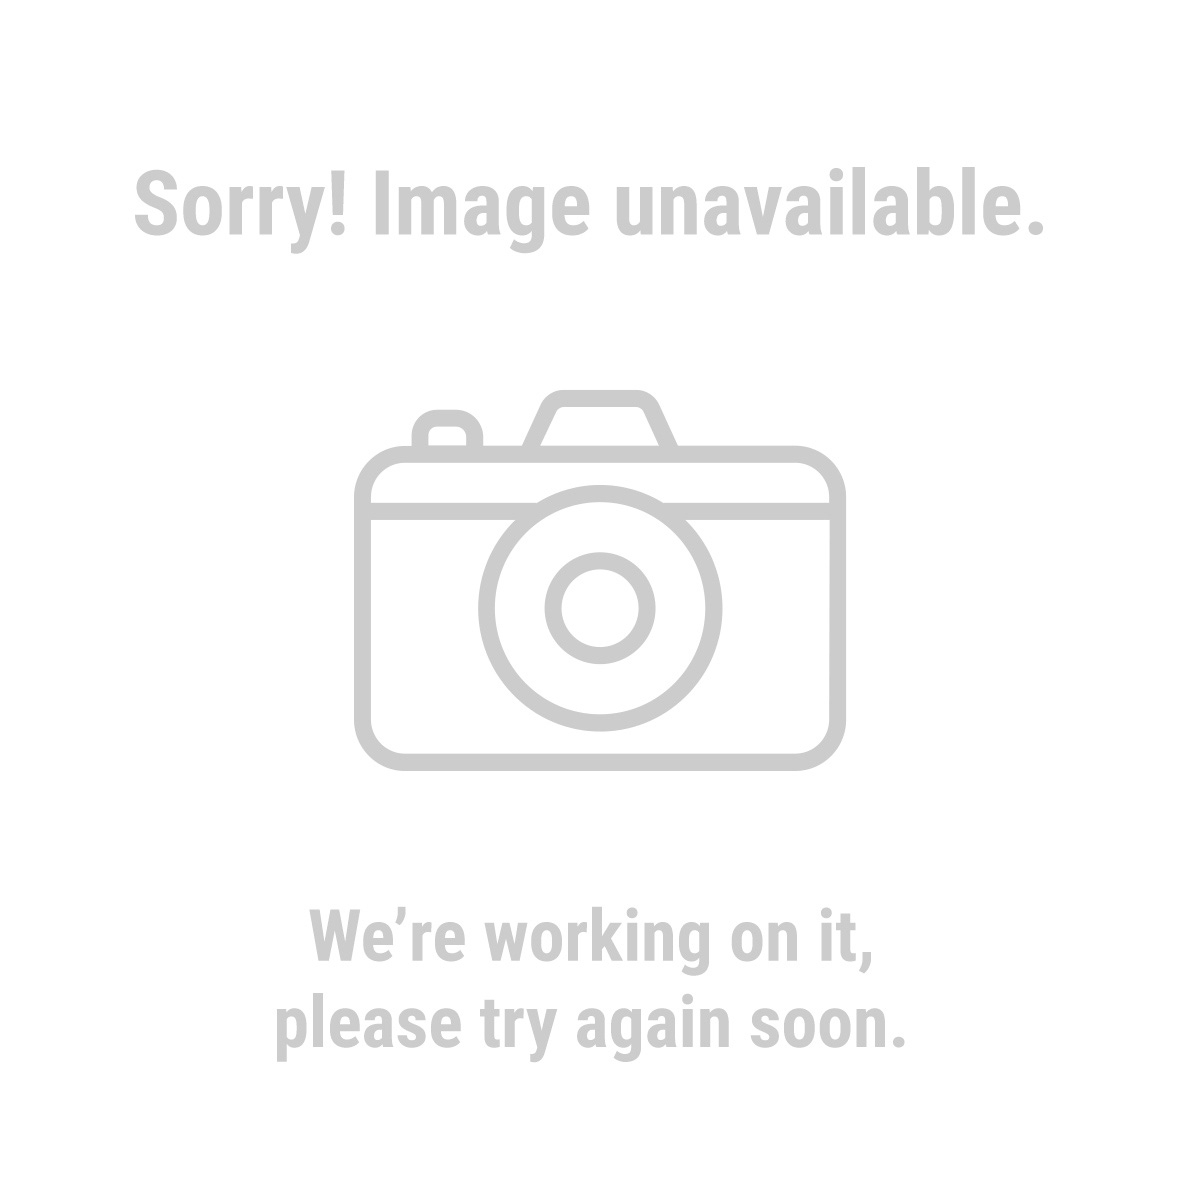 Pittsburgh 61398 21 Piece Carbon Steel SAE Tap and Die Set